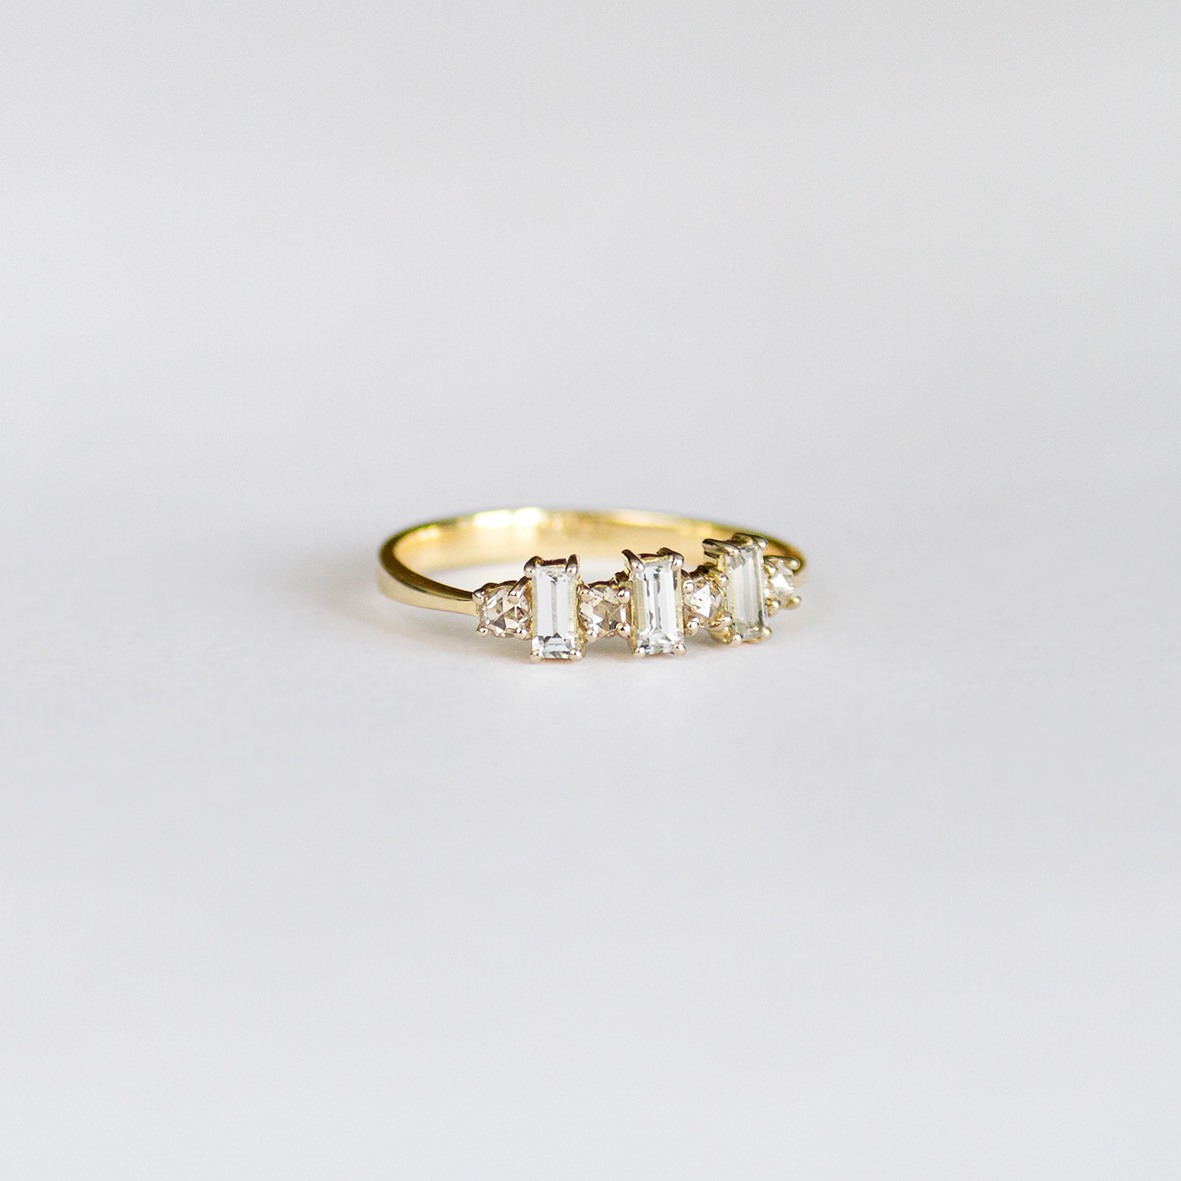 1. OONA_engagement_principal_sapphire and diamonds ring